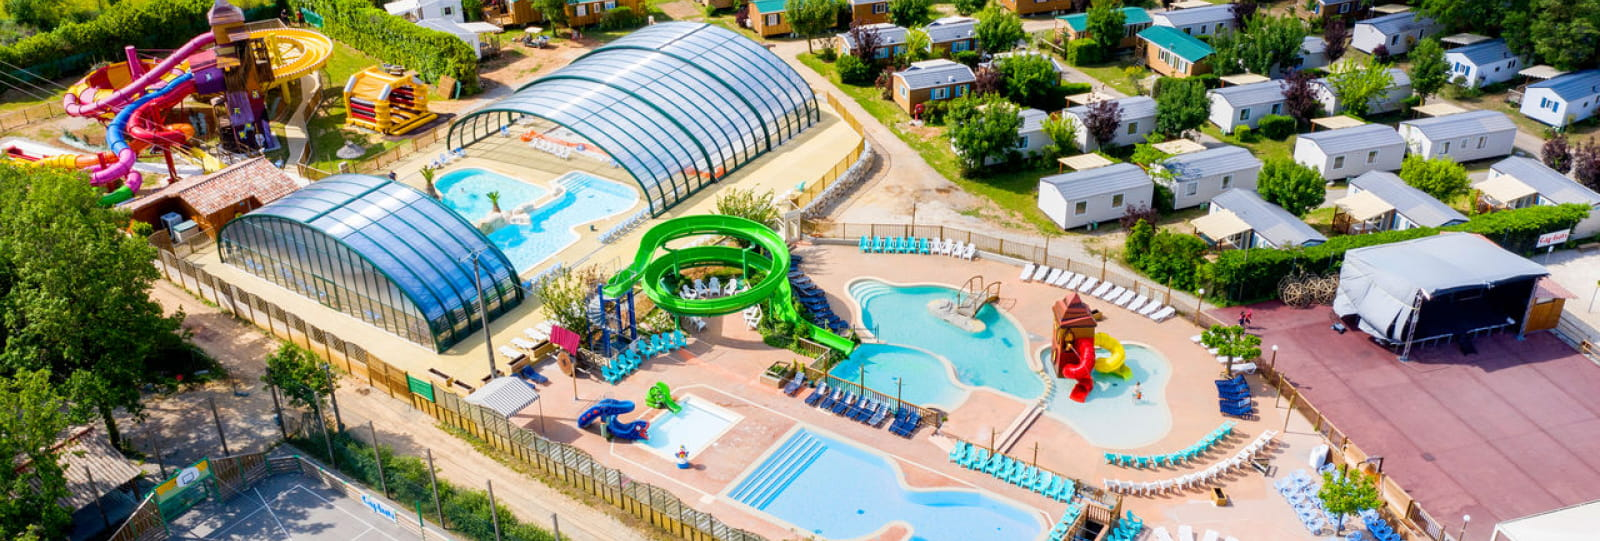 Camping Domaine le Grand Lierne